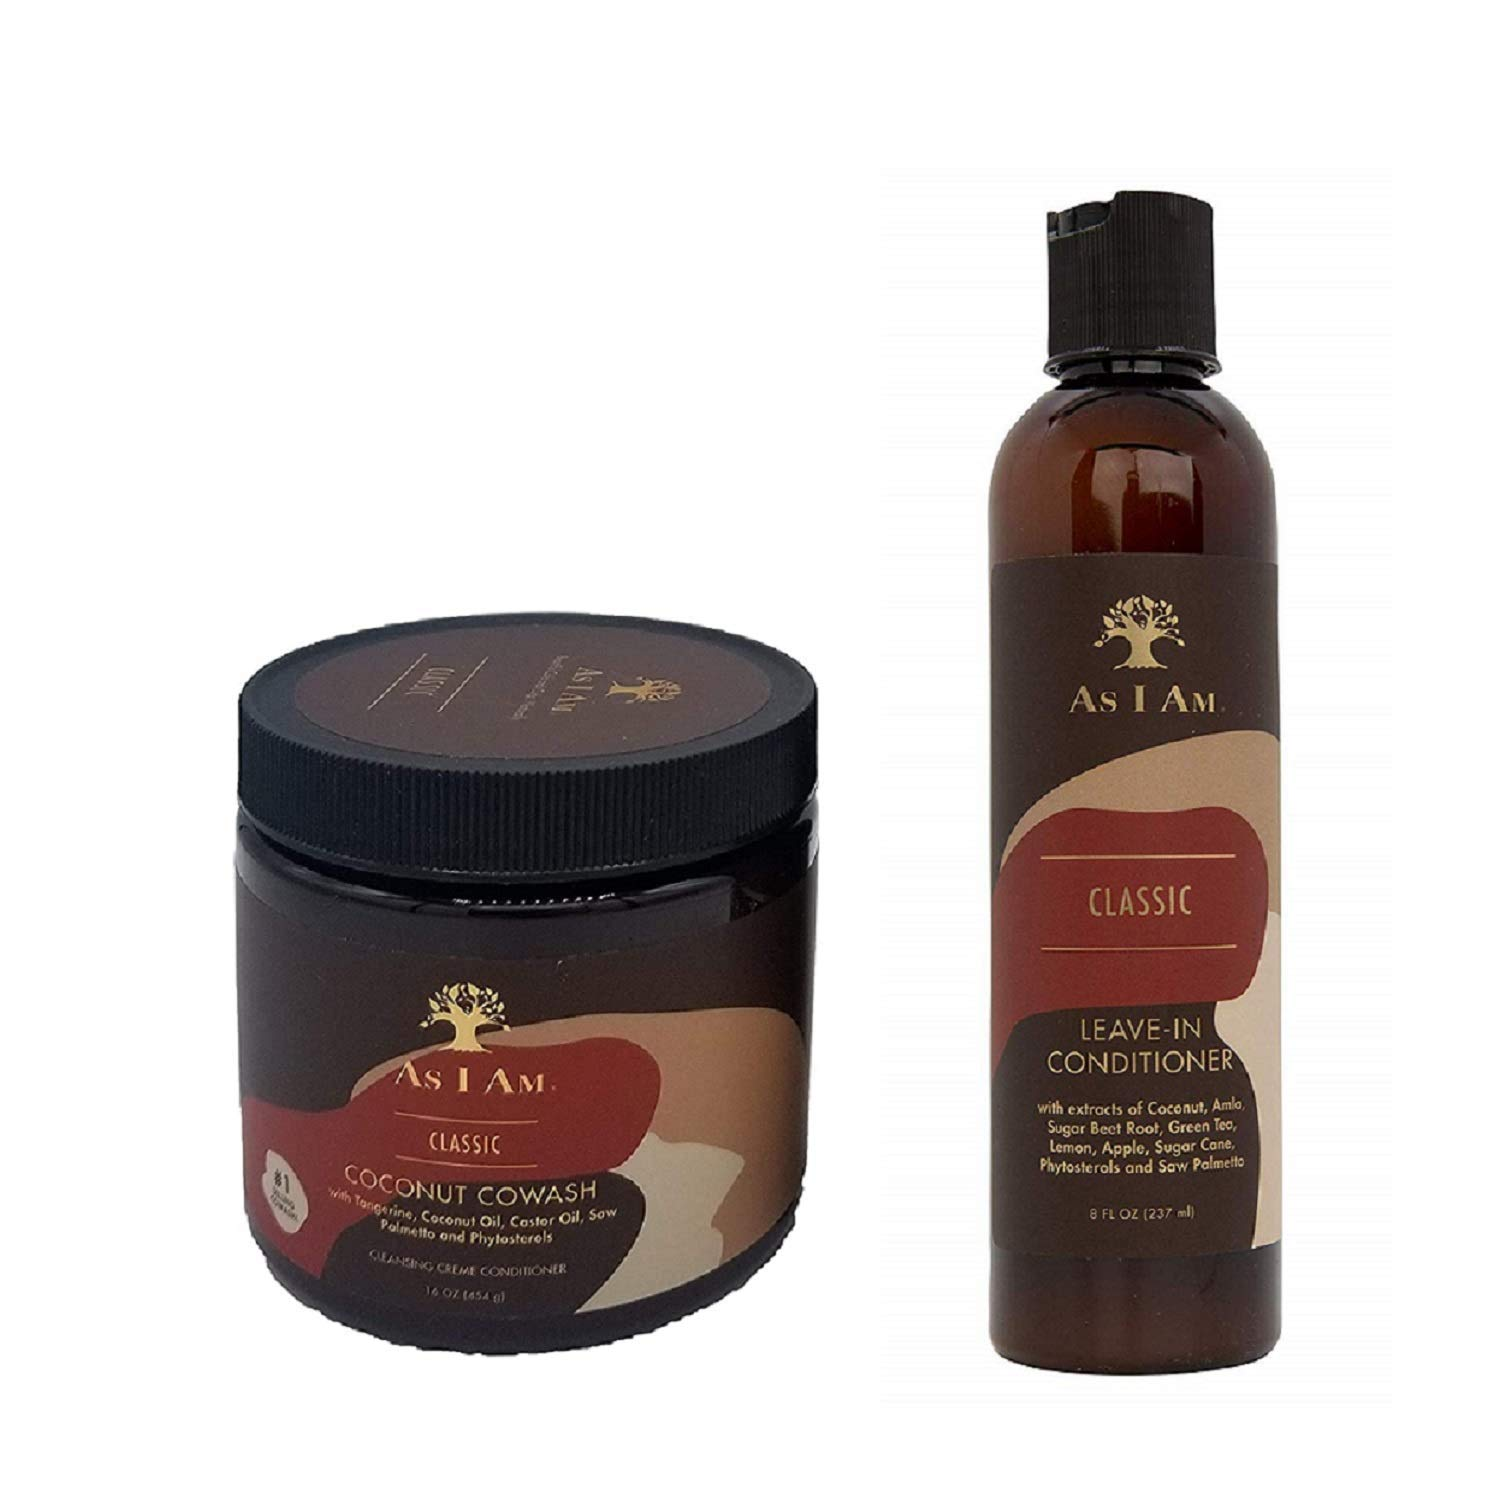 As I Am Leave-in Conditioner 8 Ounce and Coconut Cowash Cleansing Conditioner 16 Ounce